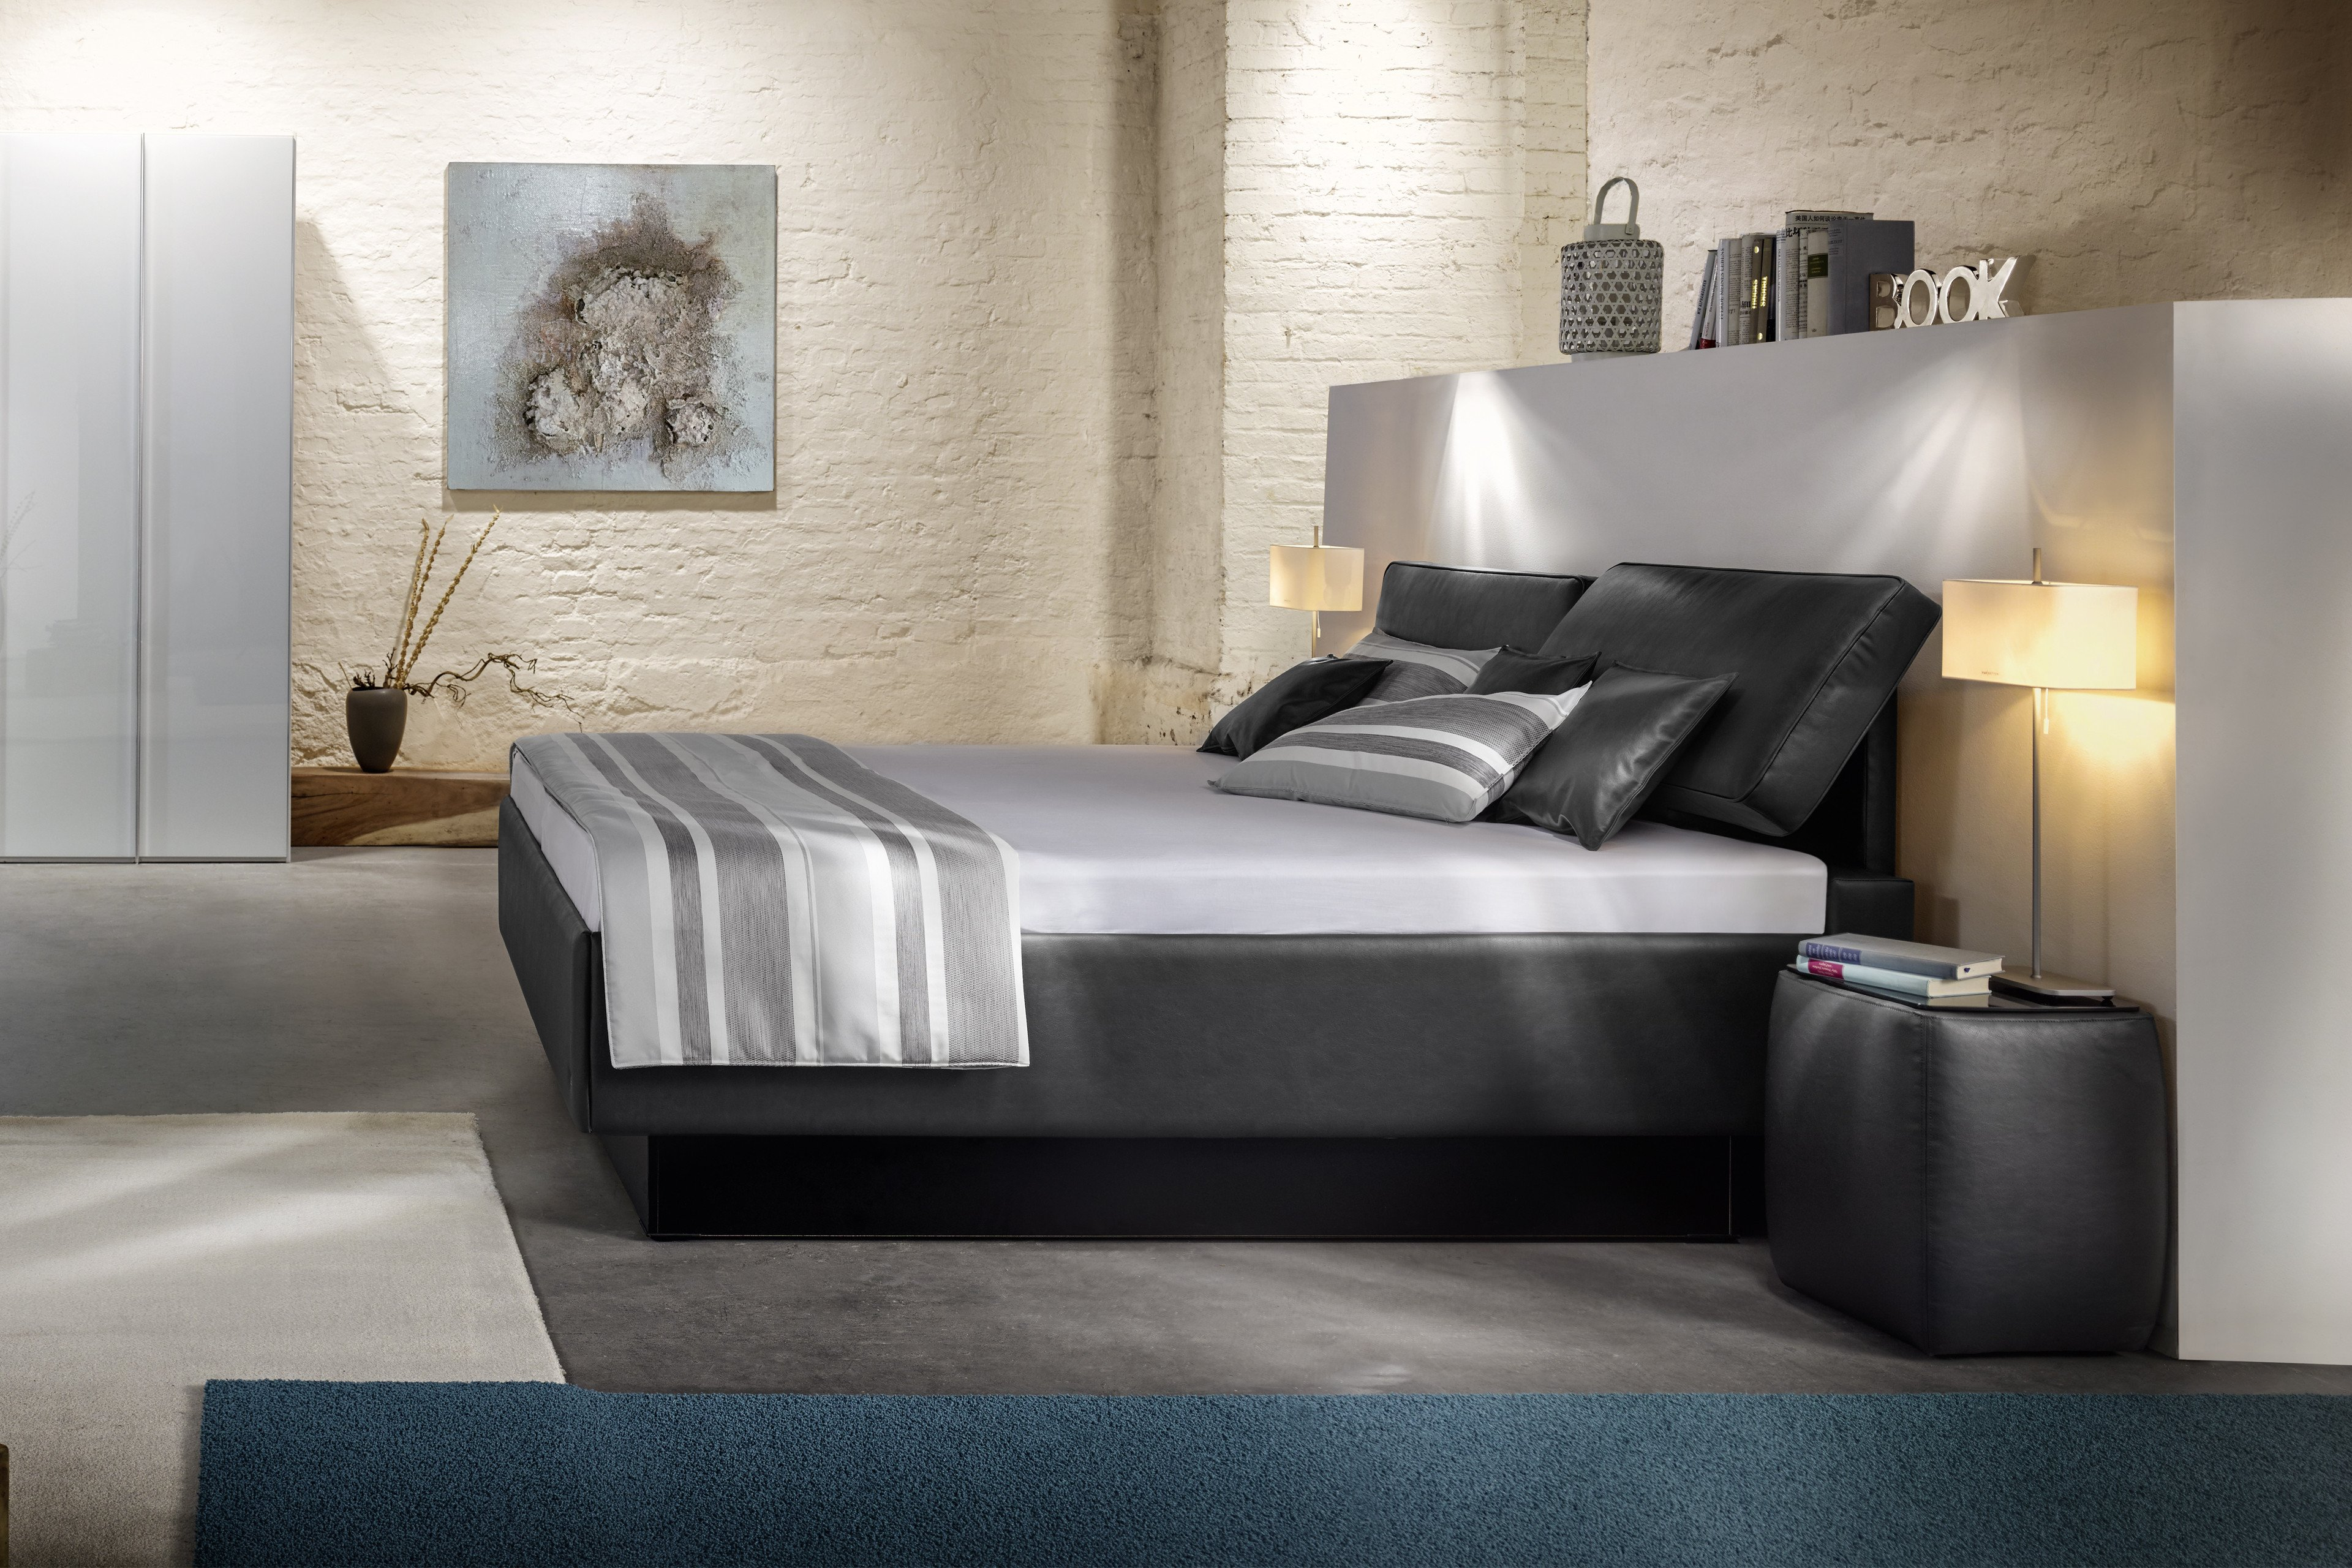 polsterbett von ruf modell composium in dunkelbraun m bel letz ihr online shop. Black Bedroom Furniture Sets. Home Design Ideas